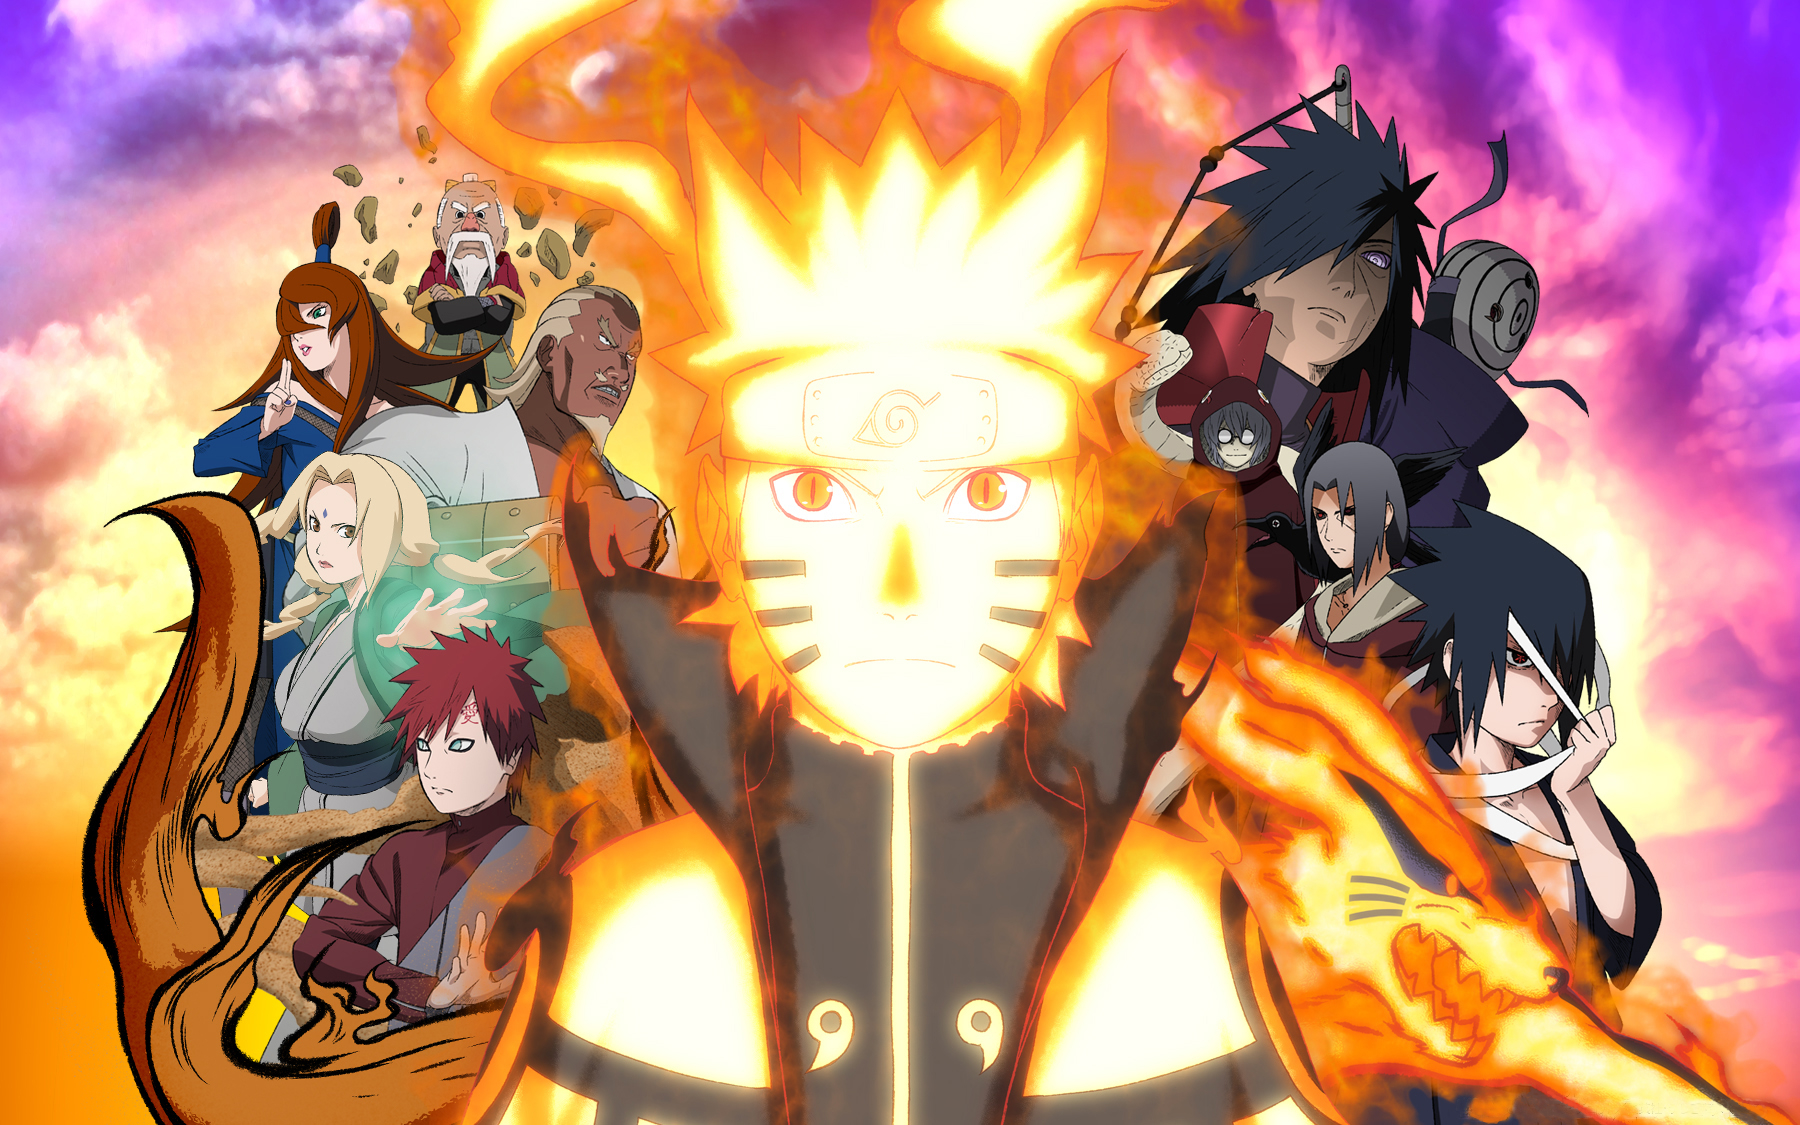 Naruto shippuden episode 52 watchcartoononline